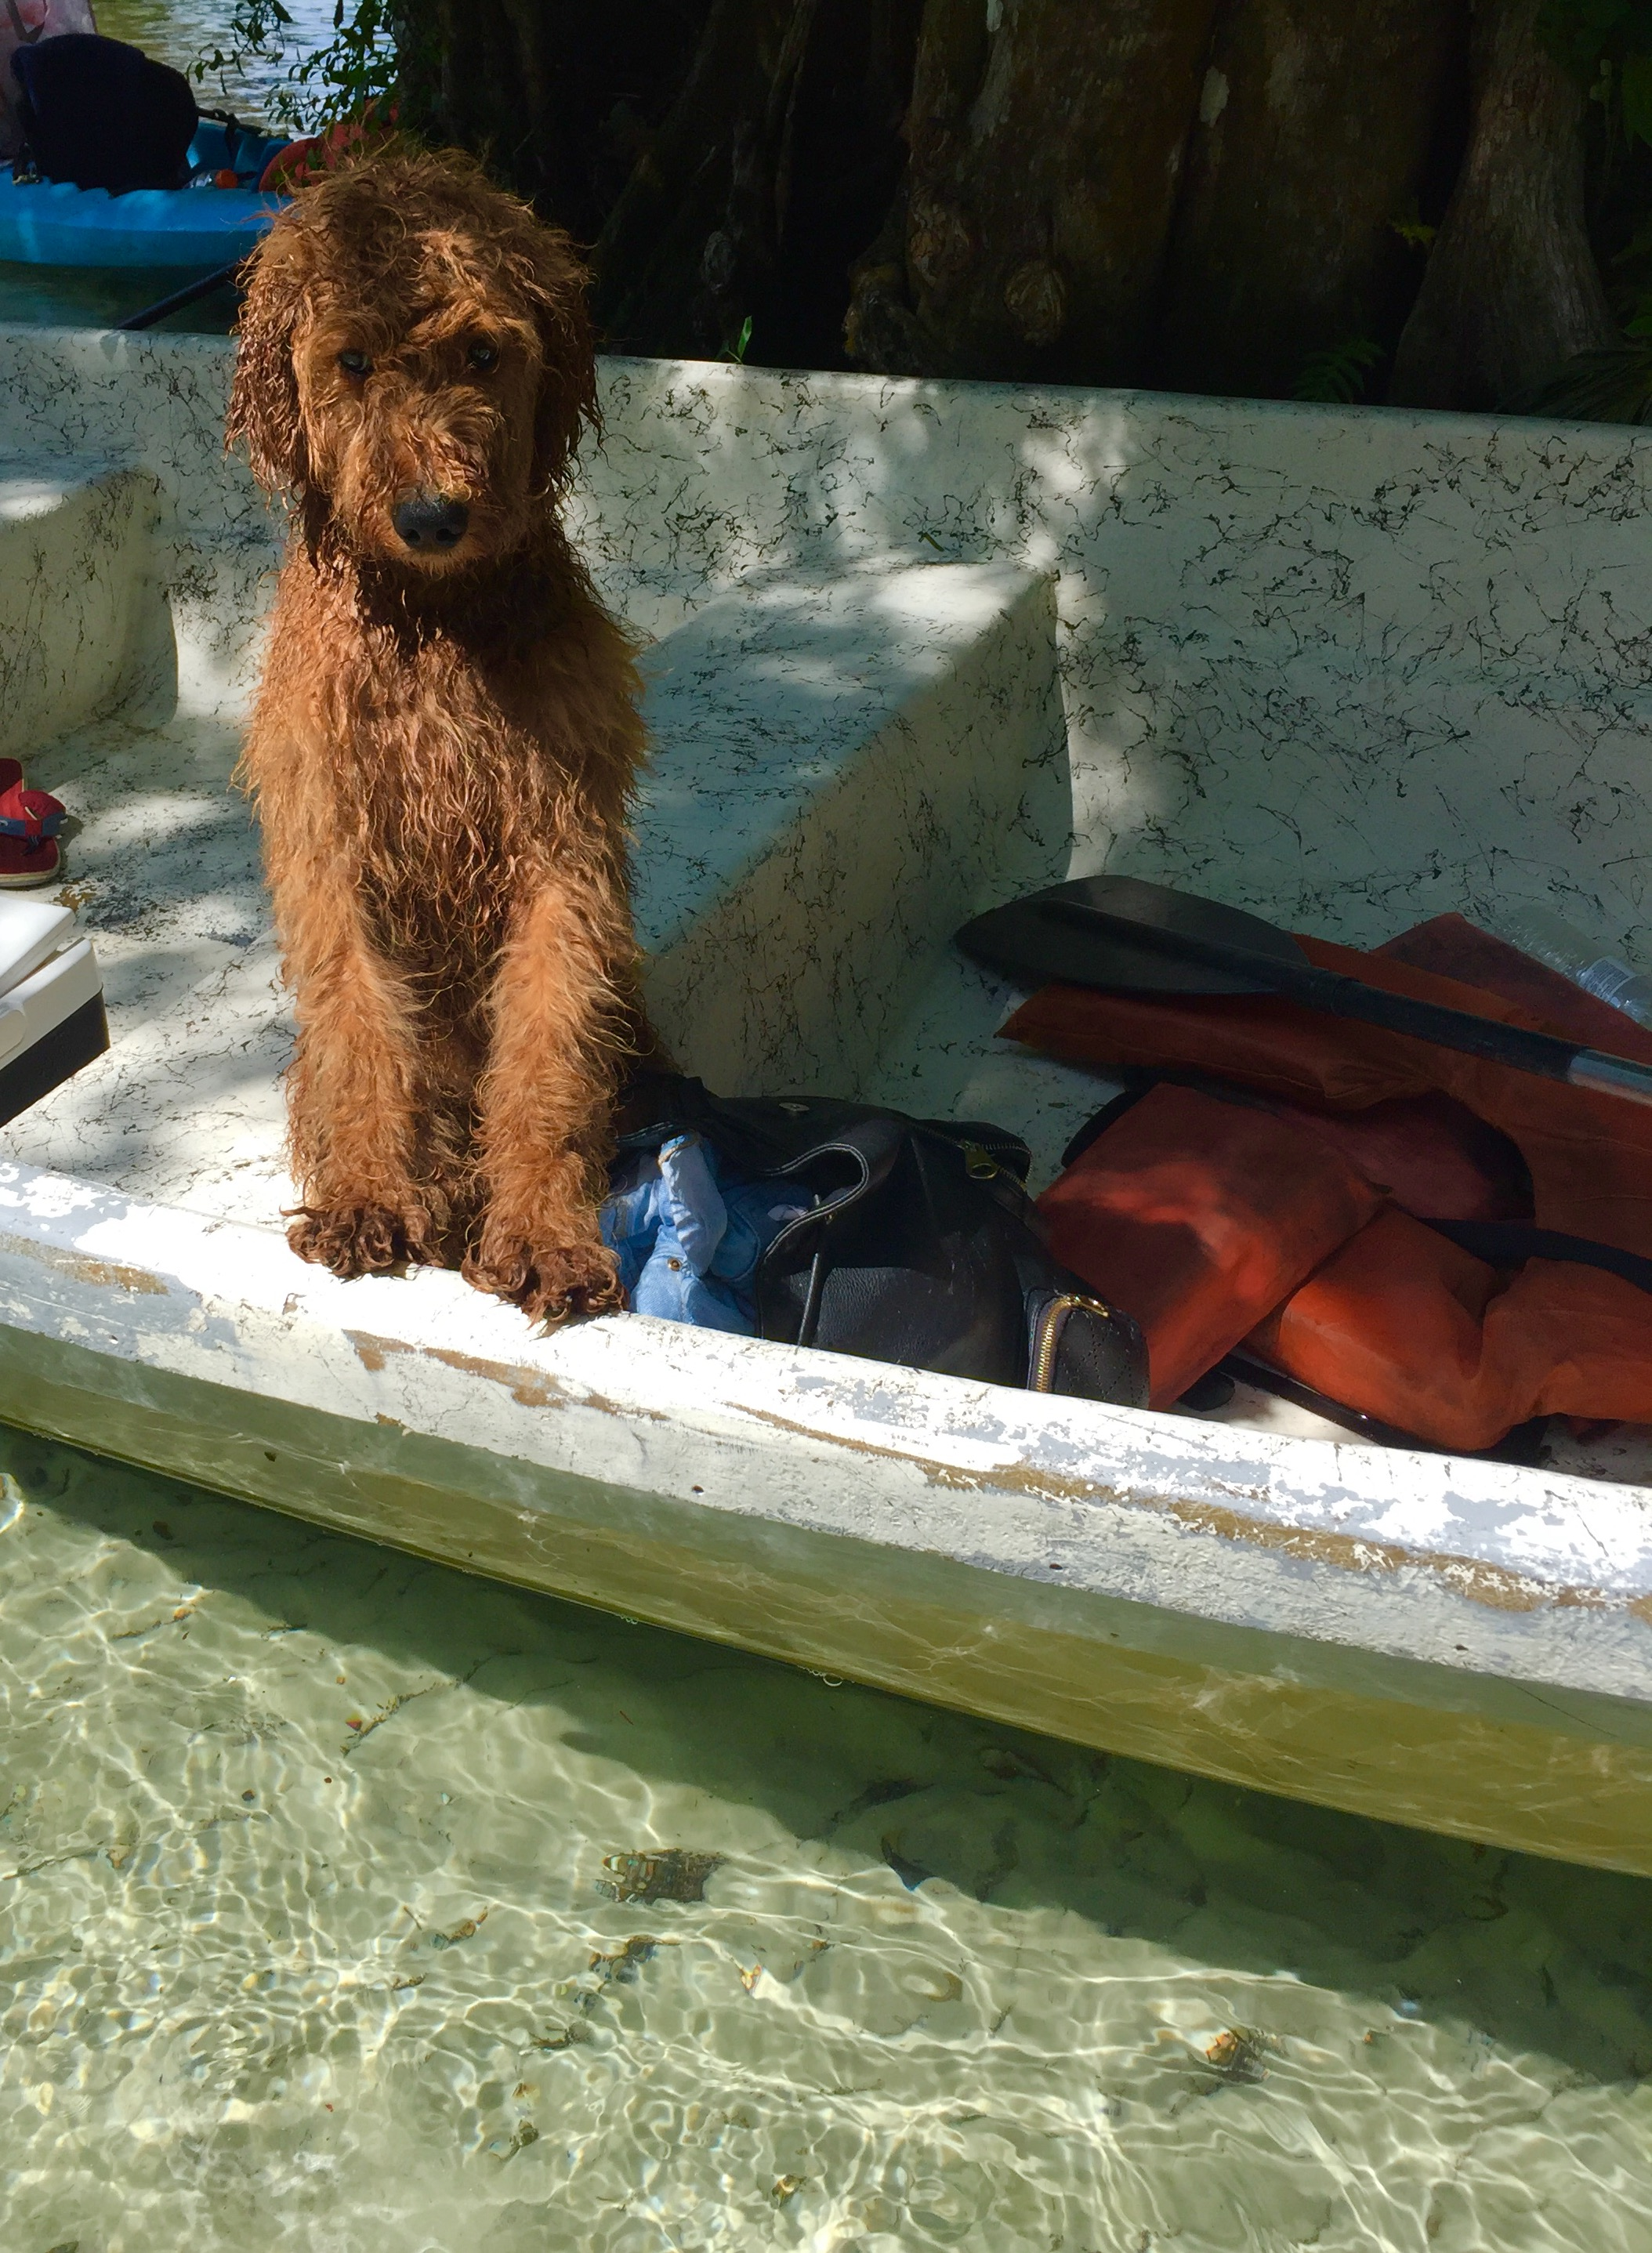 He loves the water and going boating